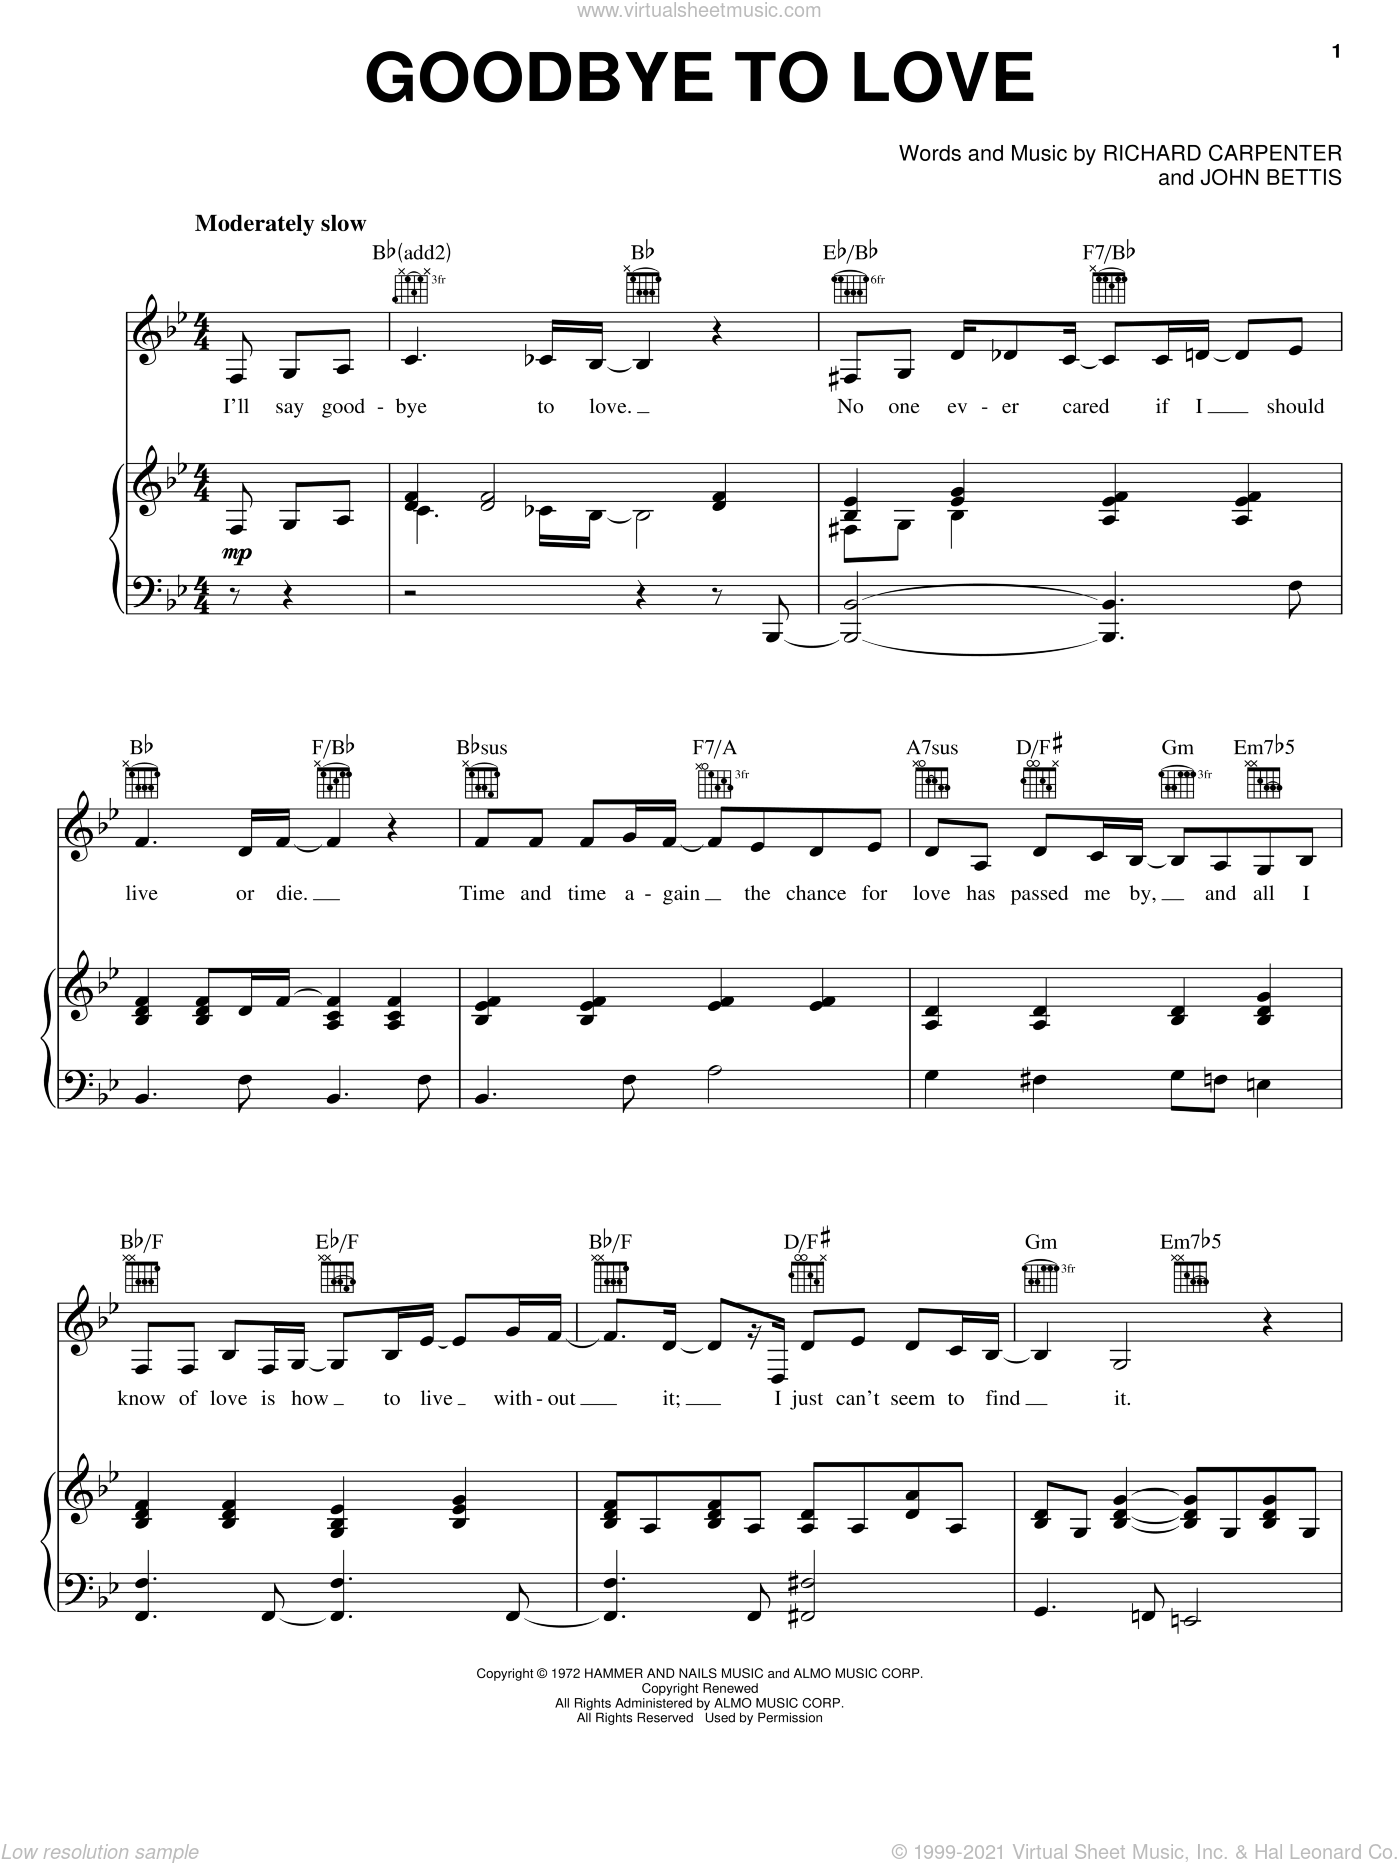 Goodbye To Love sheet music for voice, piano or guitar by Richard Carpenter